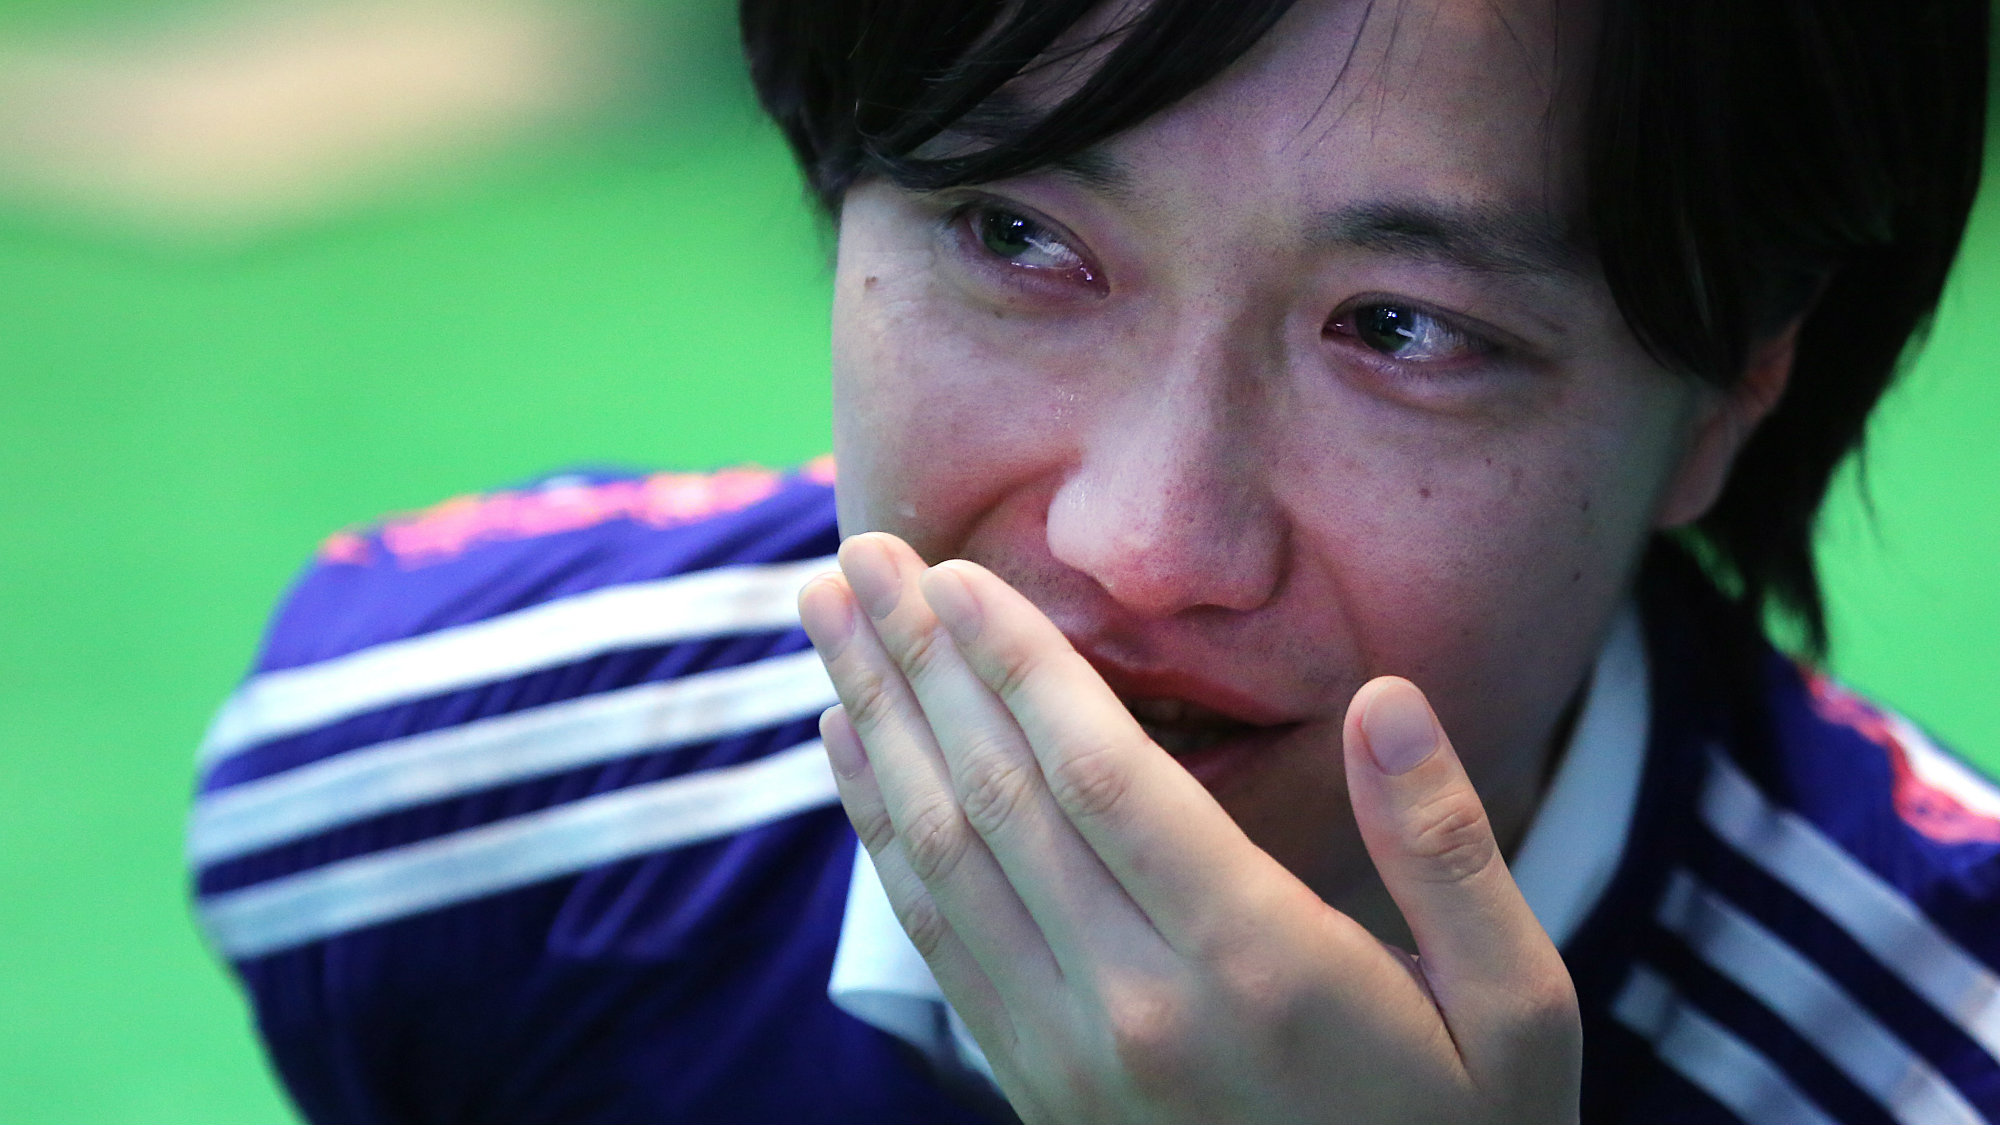 A Japanese soccer fan cries after watching a live broadcasting of the World Cup soccer match between Japan and Colombia at a public viewing venue in Tokyo, Wednesday, June 25, 2014.